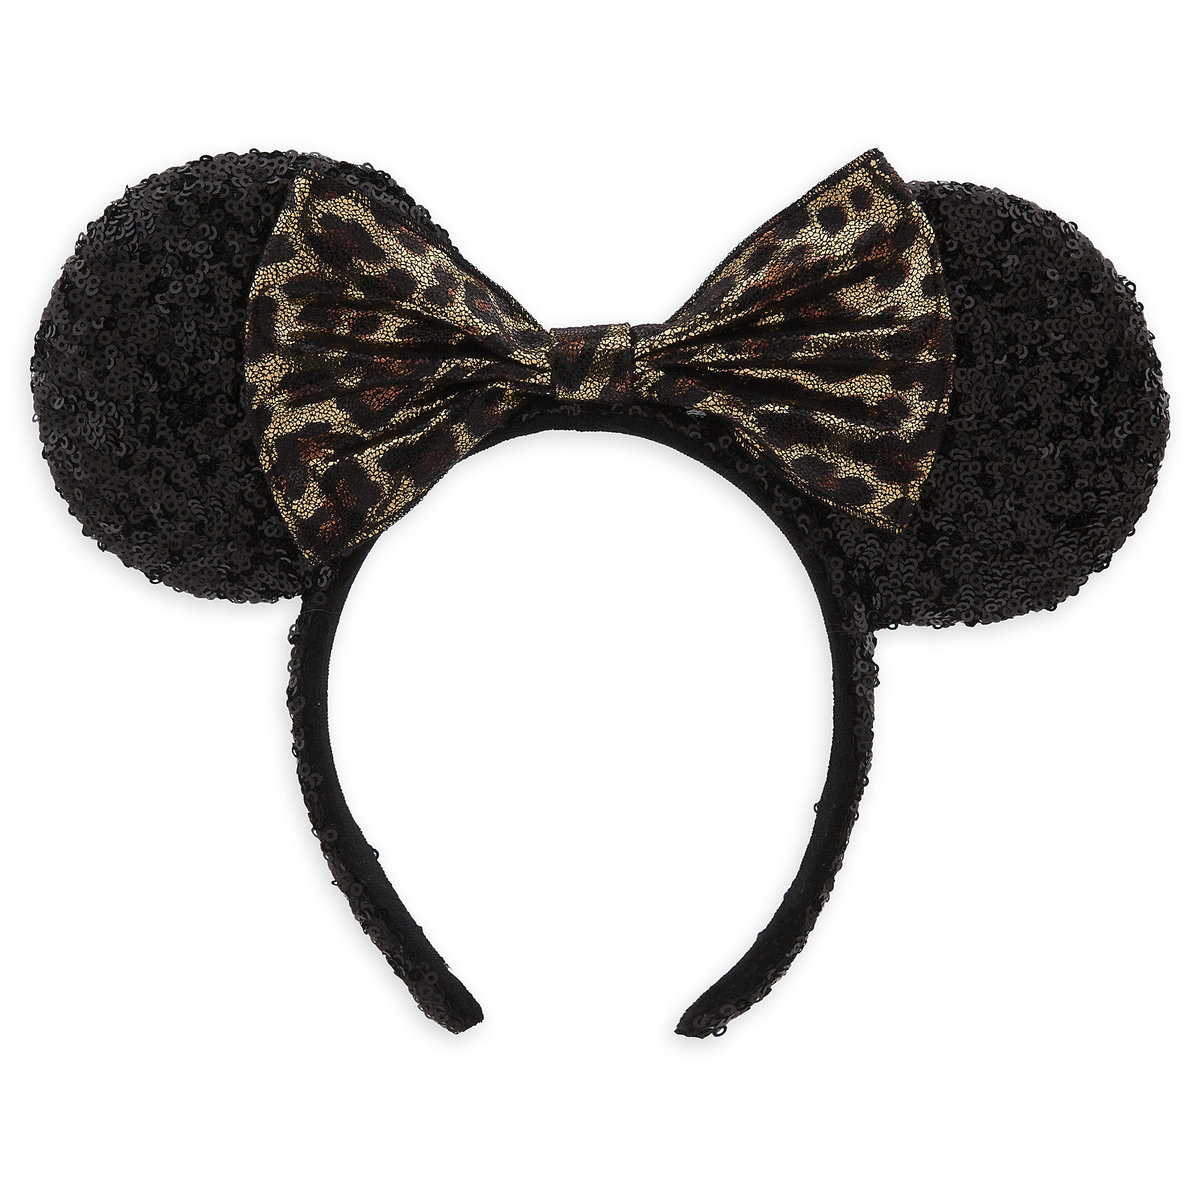 0b3c29d2909905 Product Image of Minnie Mouse Ear Headband - Leopard # 1